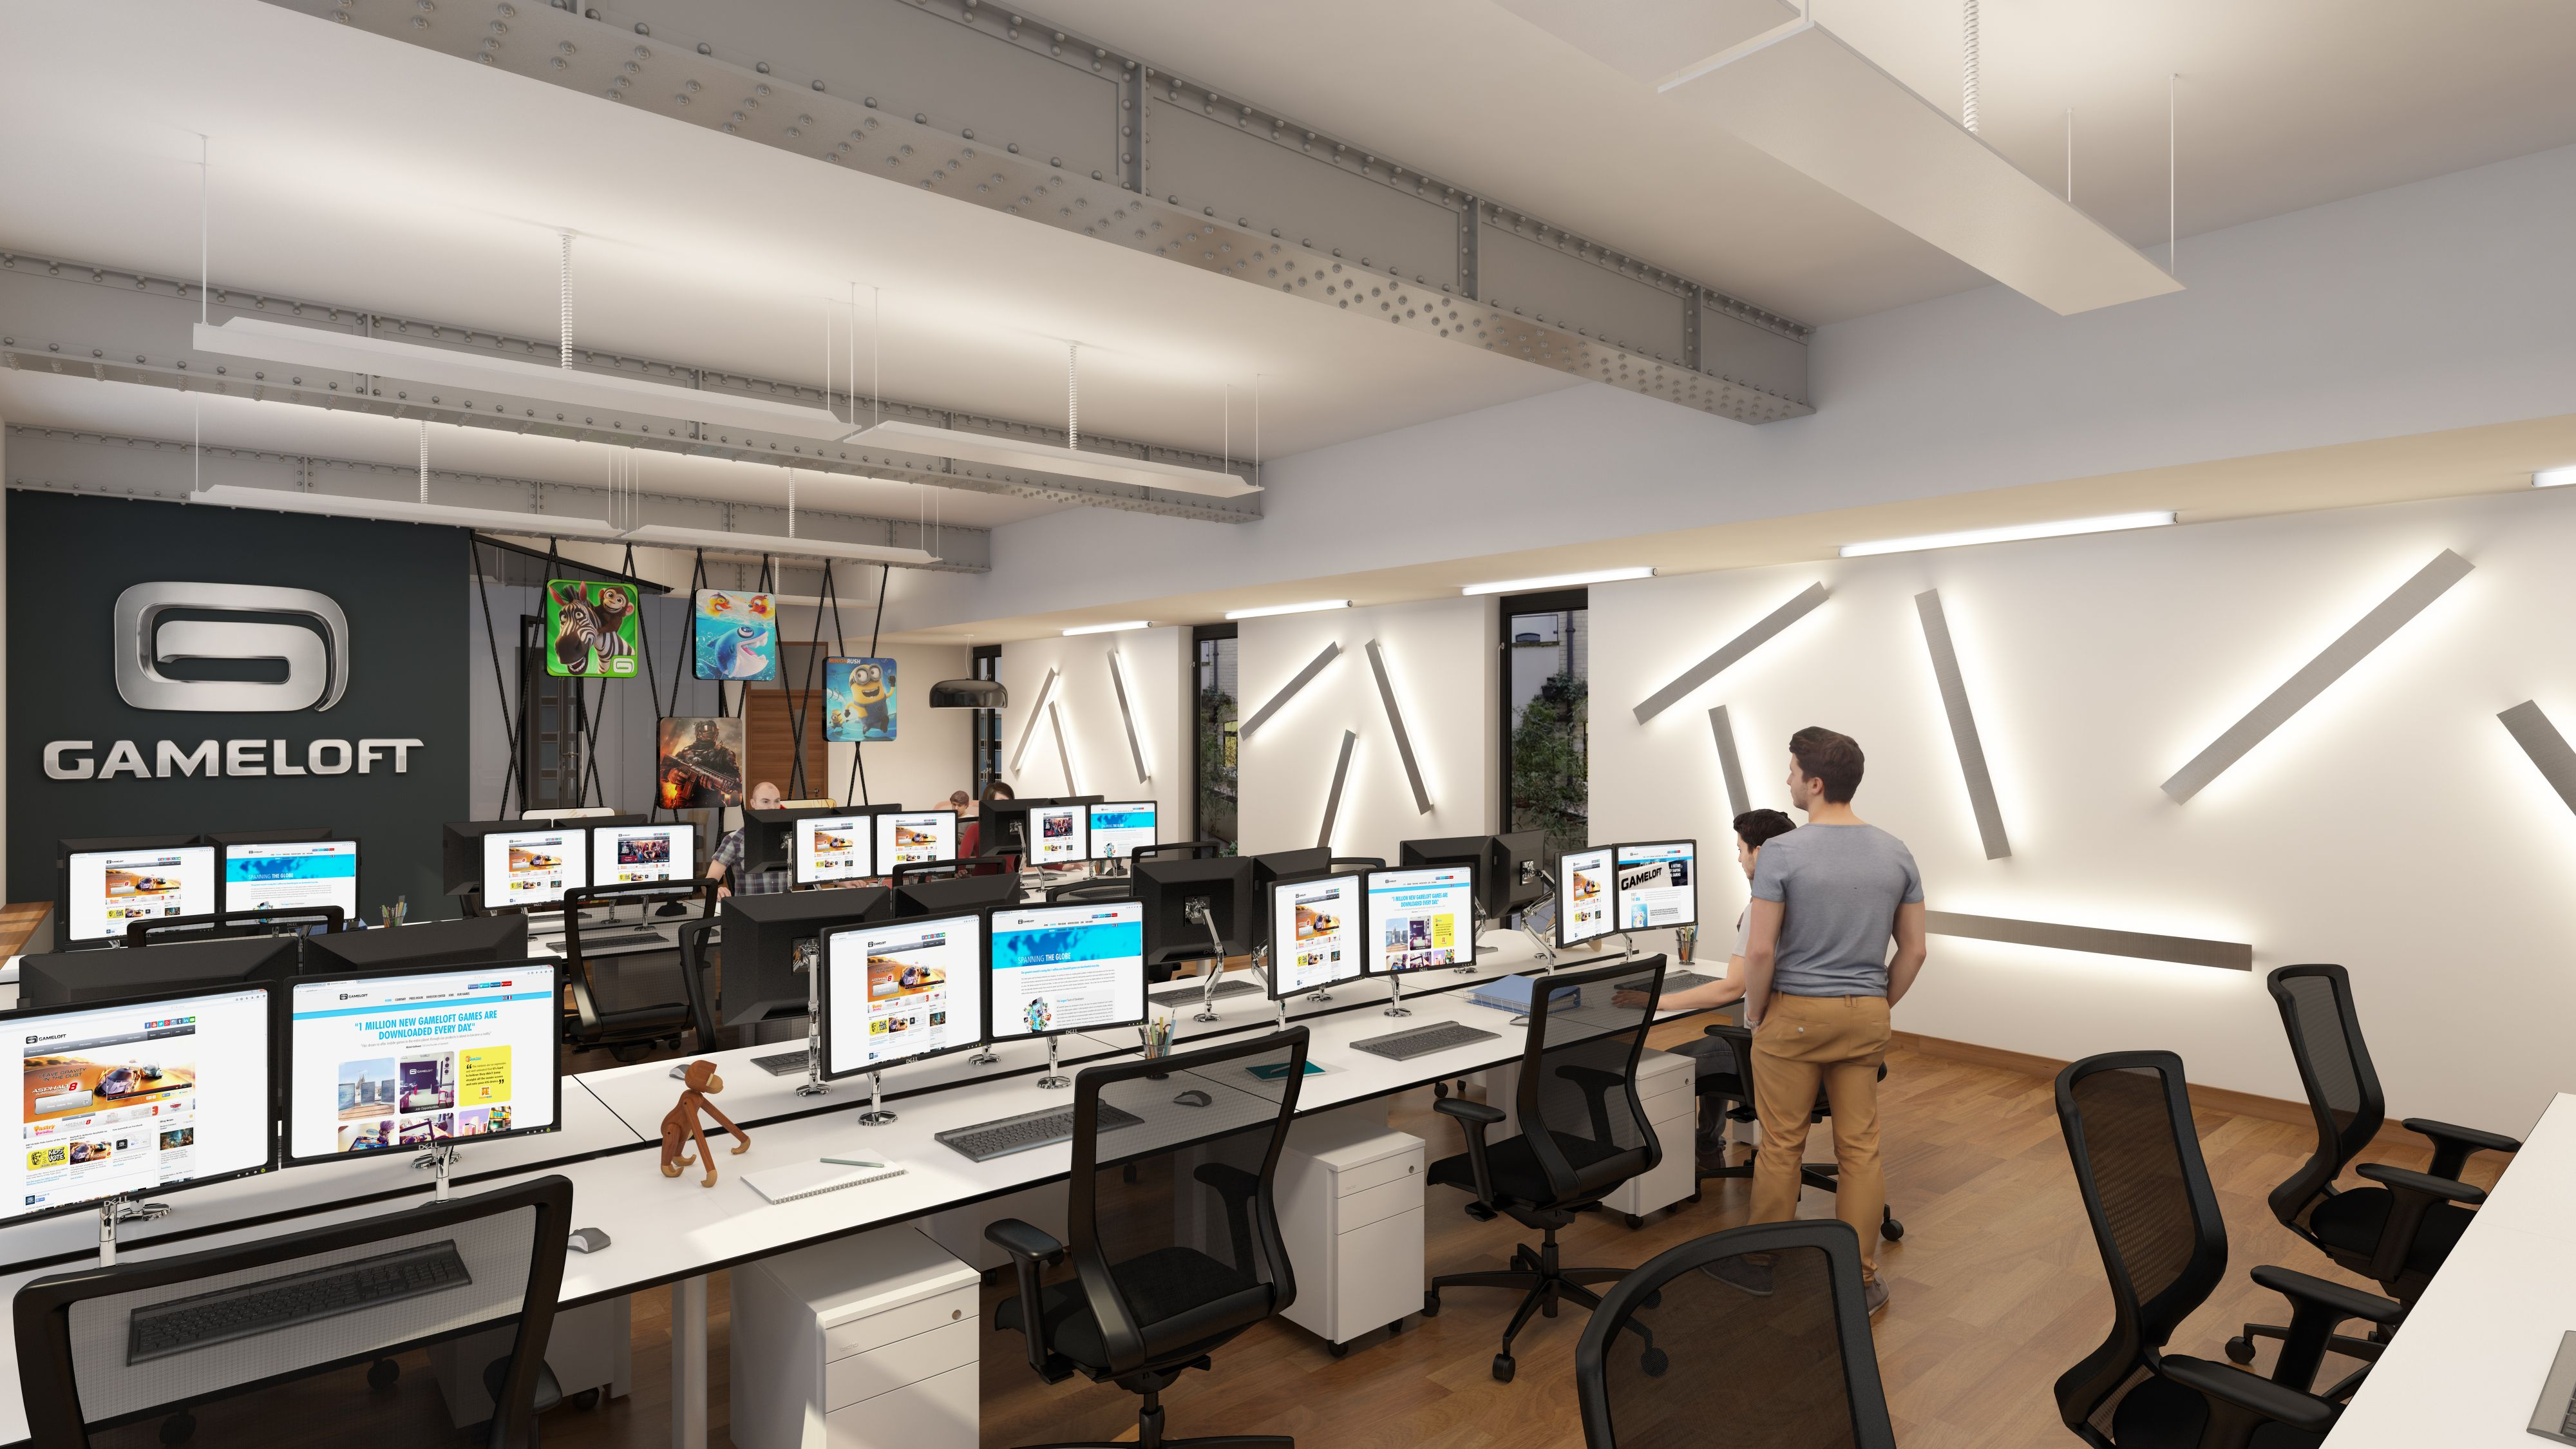 A Quick Look Inside Gamelofts New London HQ